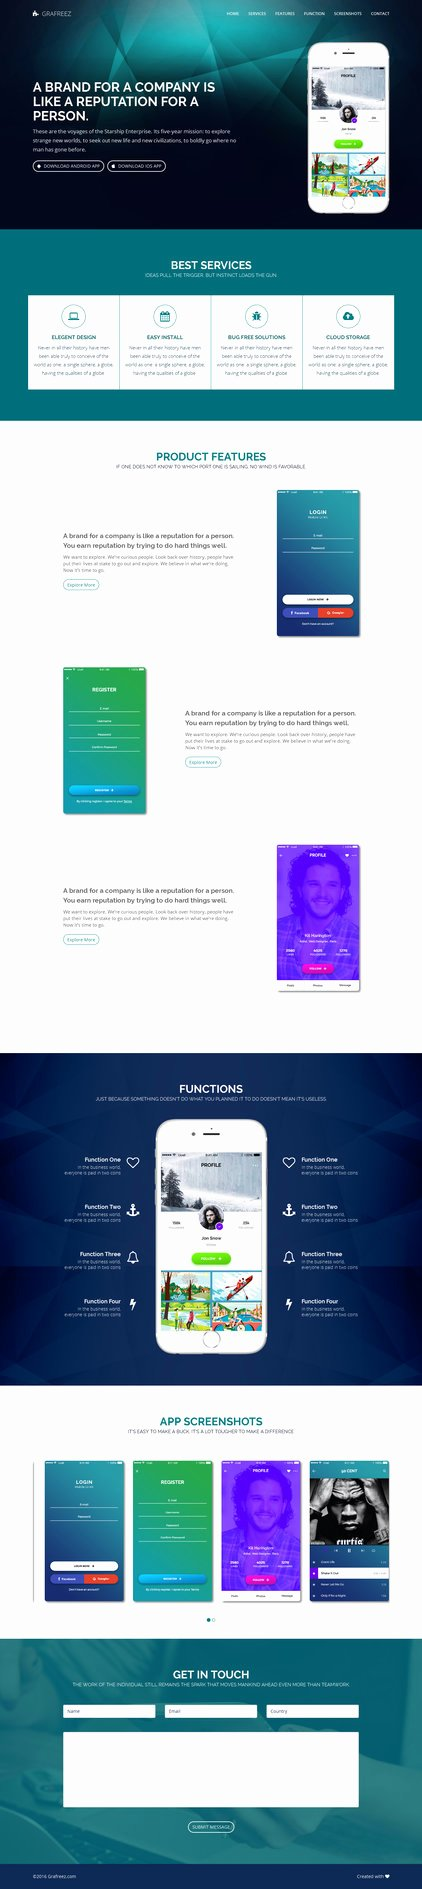 Mobile Landing Page Template Unique Light Free Mobile App Landing Page Template HTML by